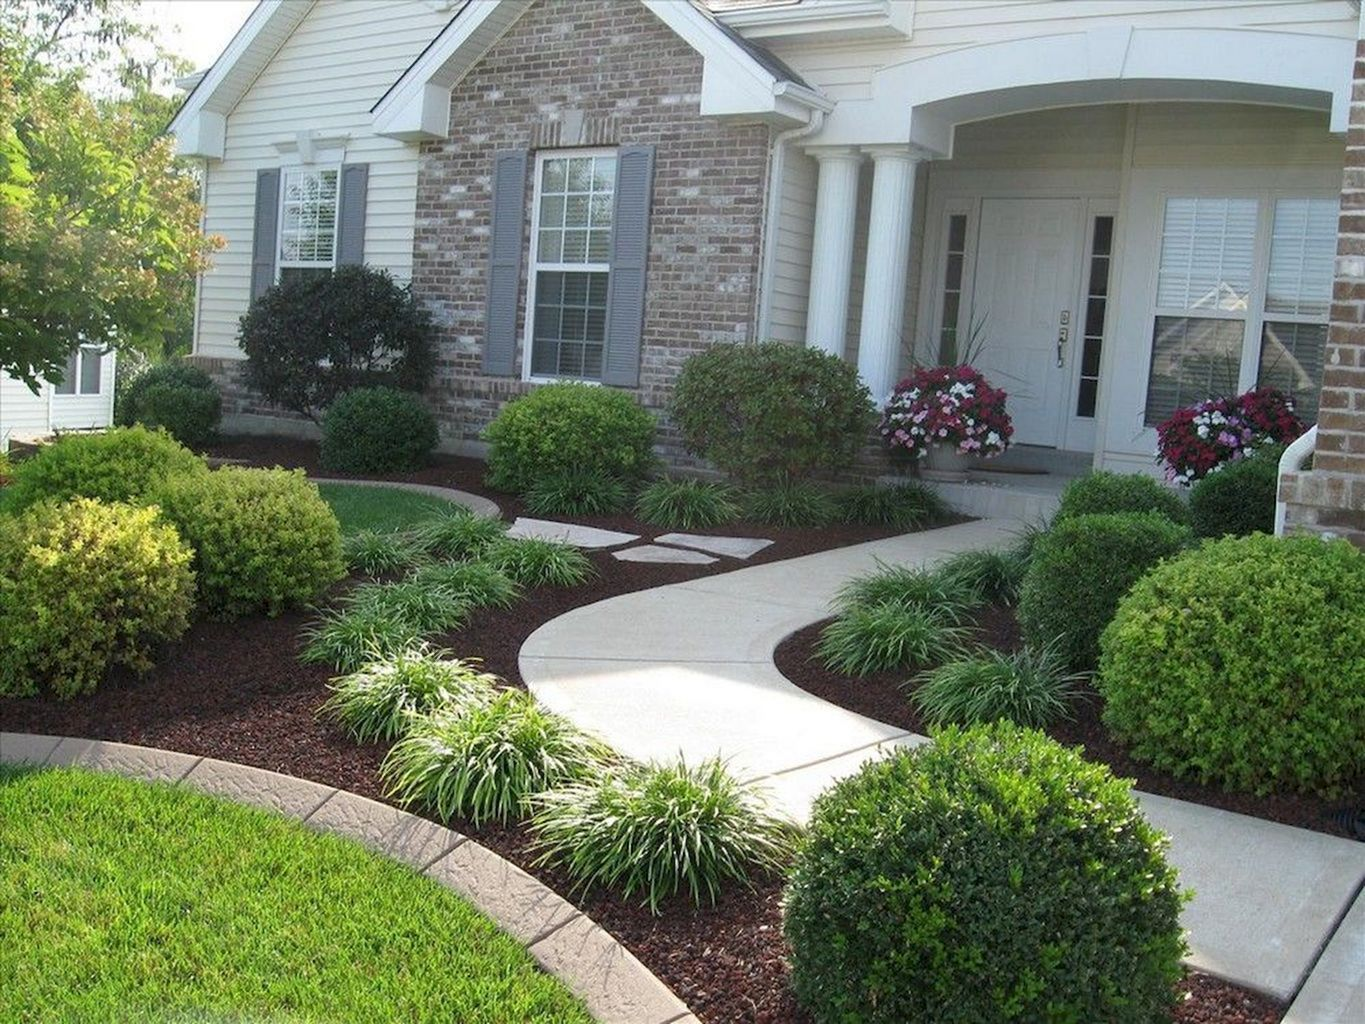 35 Most Beautiful Front Yard Landscaping Ideas For ... on Luxury Front Yard Landscape id=69401